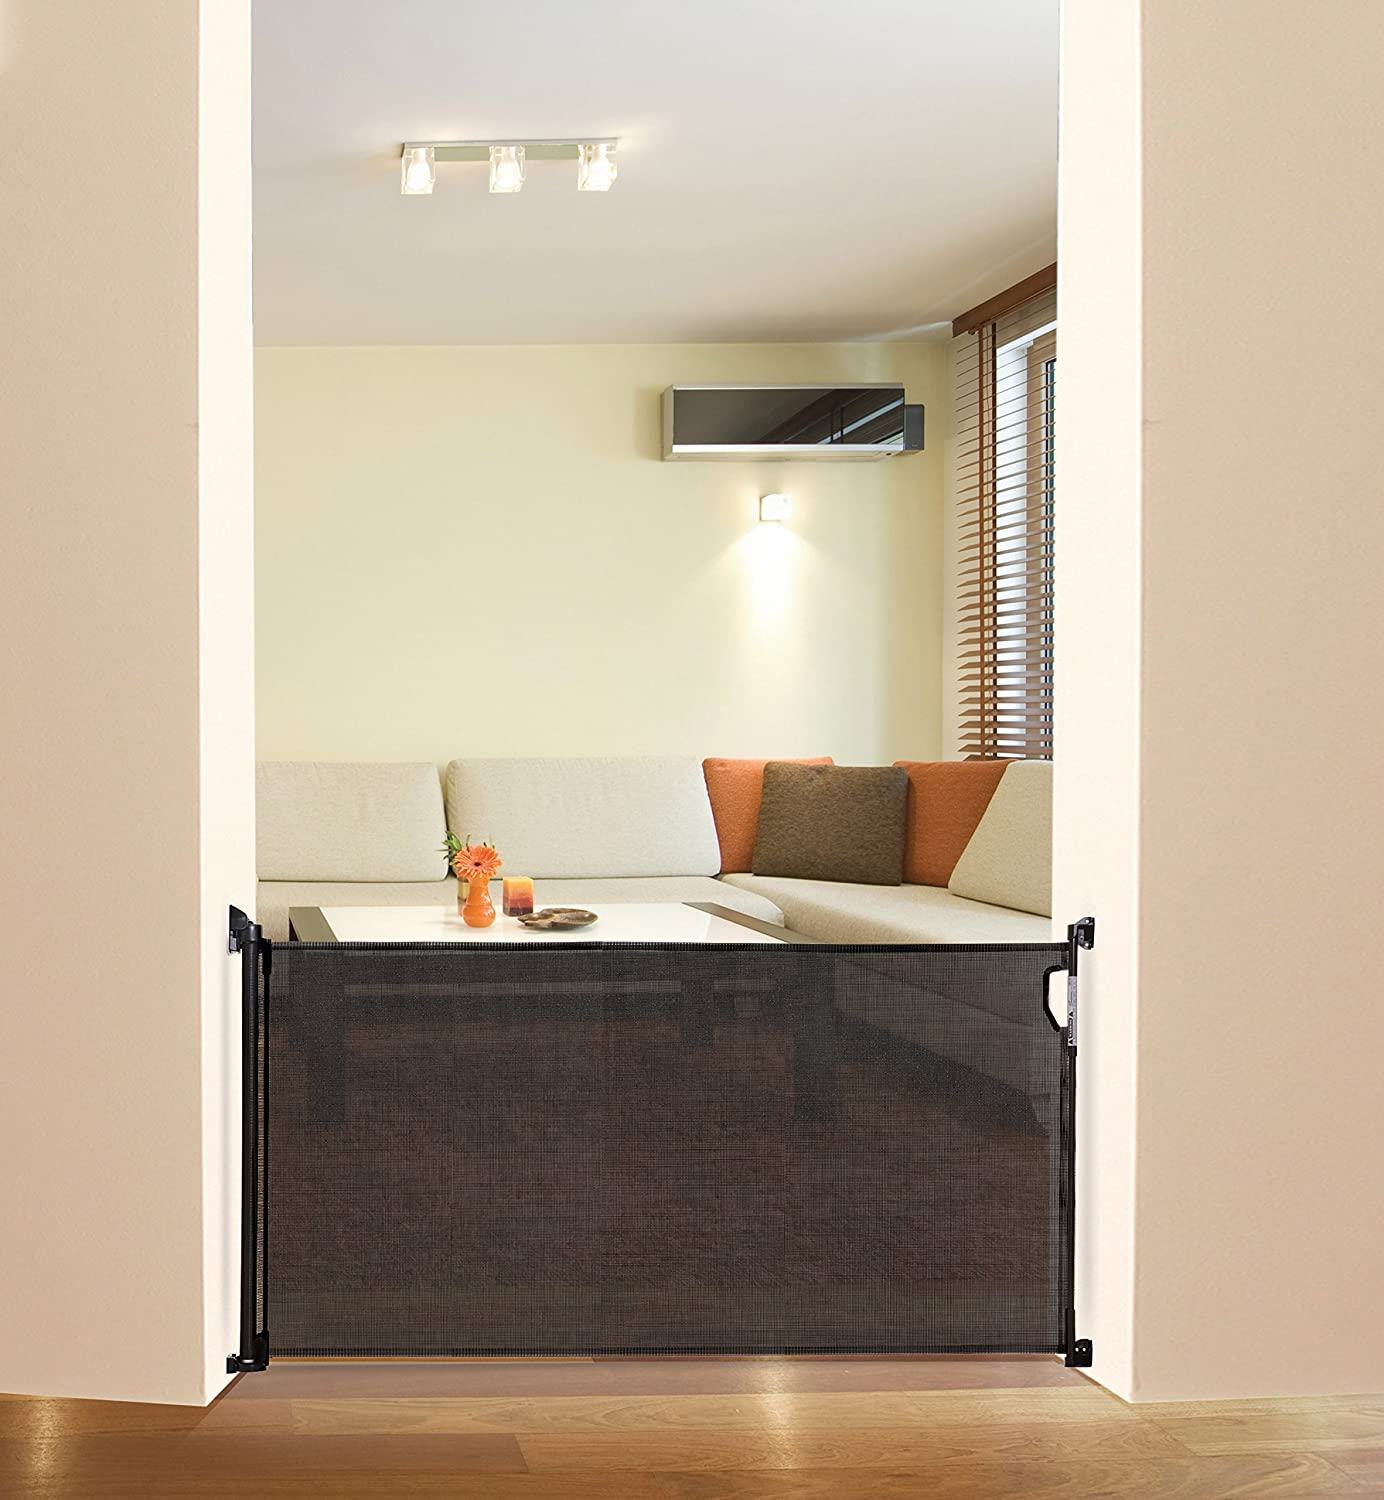 Image result for Dreambaby Retractable Gate With Spacers amazon